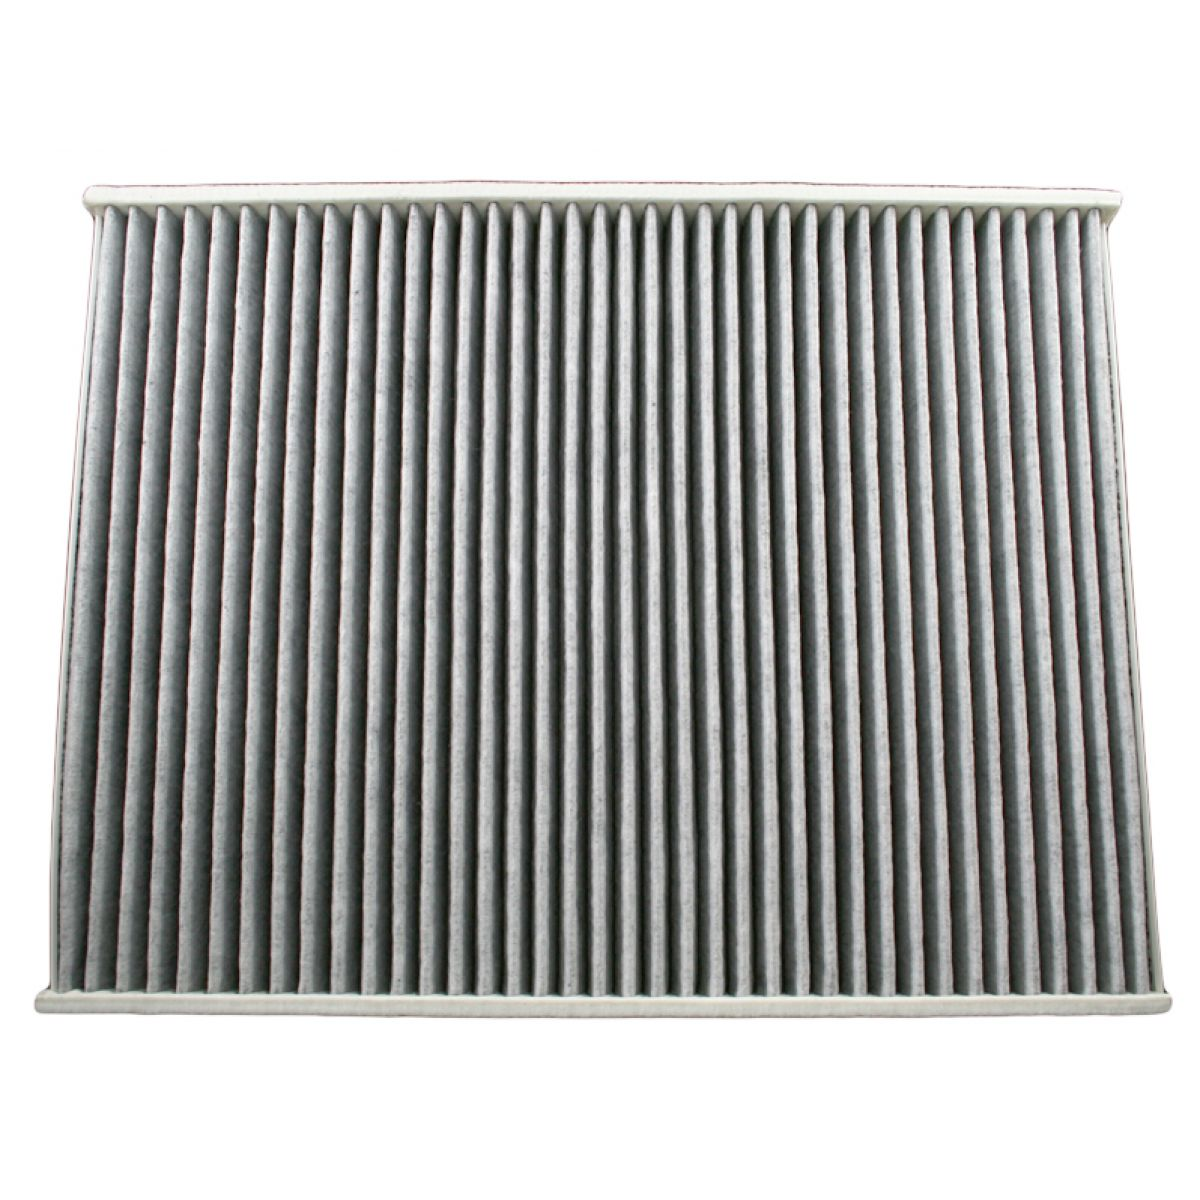 New Cabin Air Filter 1590015-64536942025 LeSabre DeVille DTS Bonneville Aurora